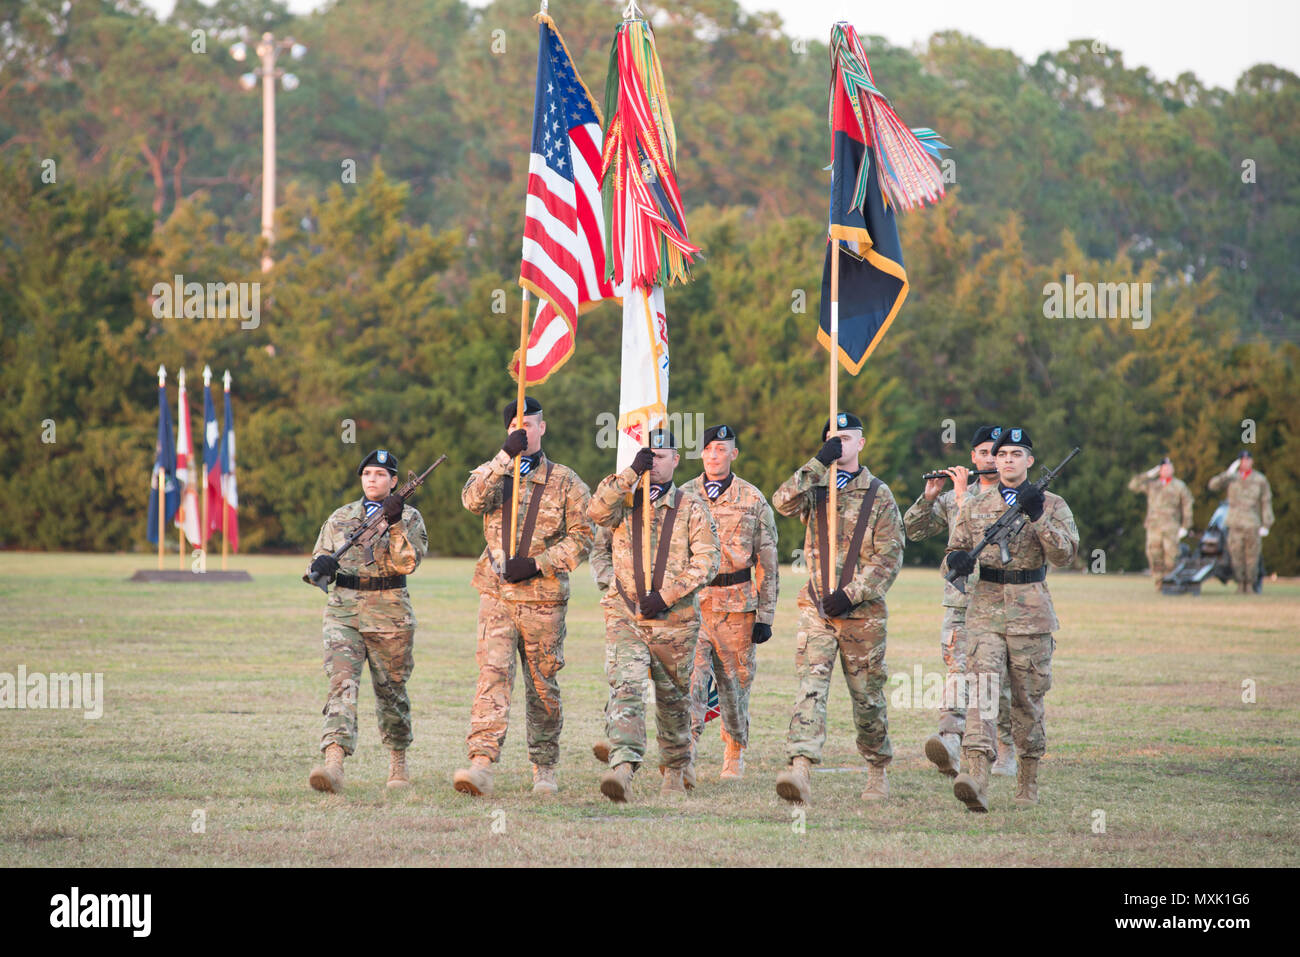 The 3rd Infantry Division color guard participates in the annual Twilight Tattoo during Marne Week at Fort Stewart Nov. 15, 2016. Twilight Tattoo is a ceremony honoring veterans and family members. (Photo by LTC Brian J. Fickel) Stock Photo